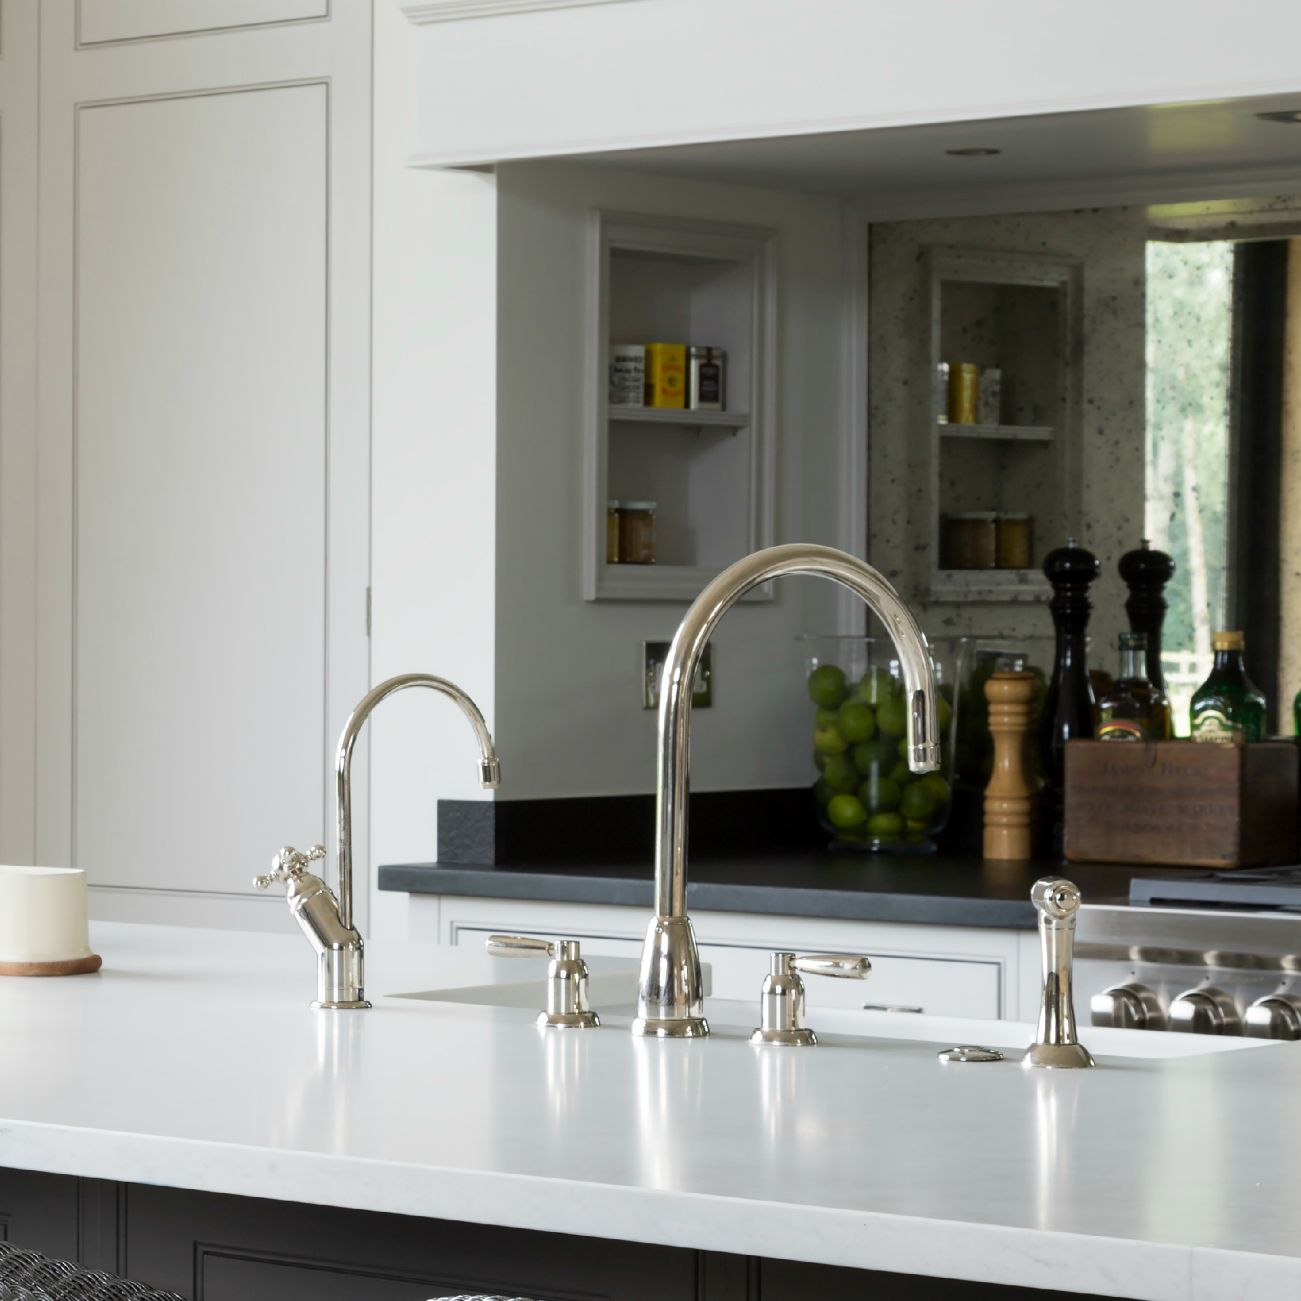 Quooker Boiling Hot Water Tap - Humphrey Munson